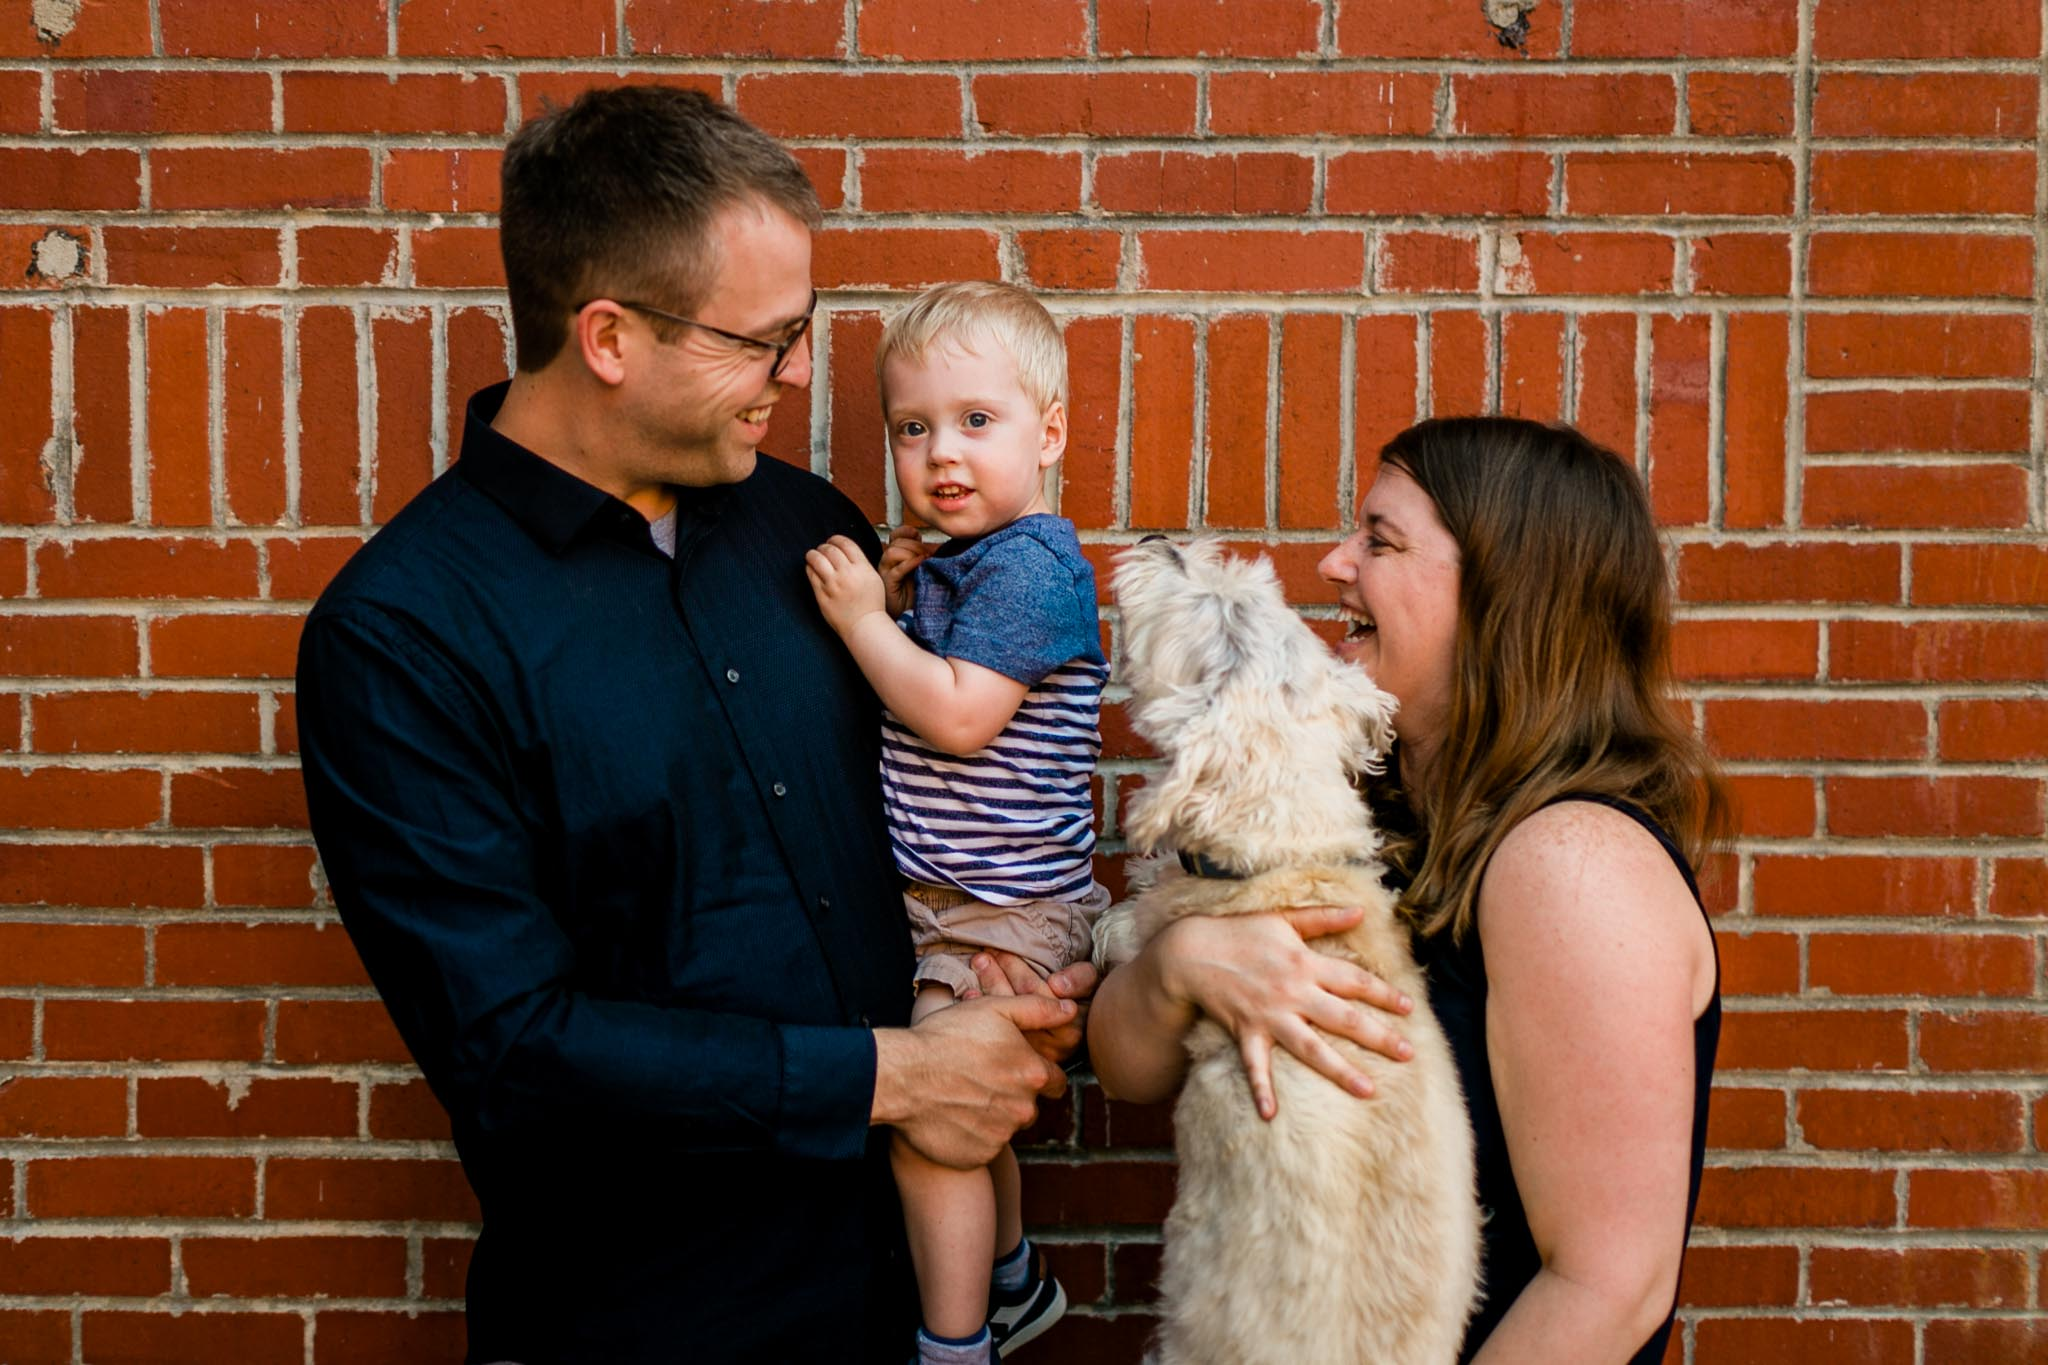 Durham Family Photographer | By G. Lin Photography | Candid lifestyle family photo at American Tobacco Campus